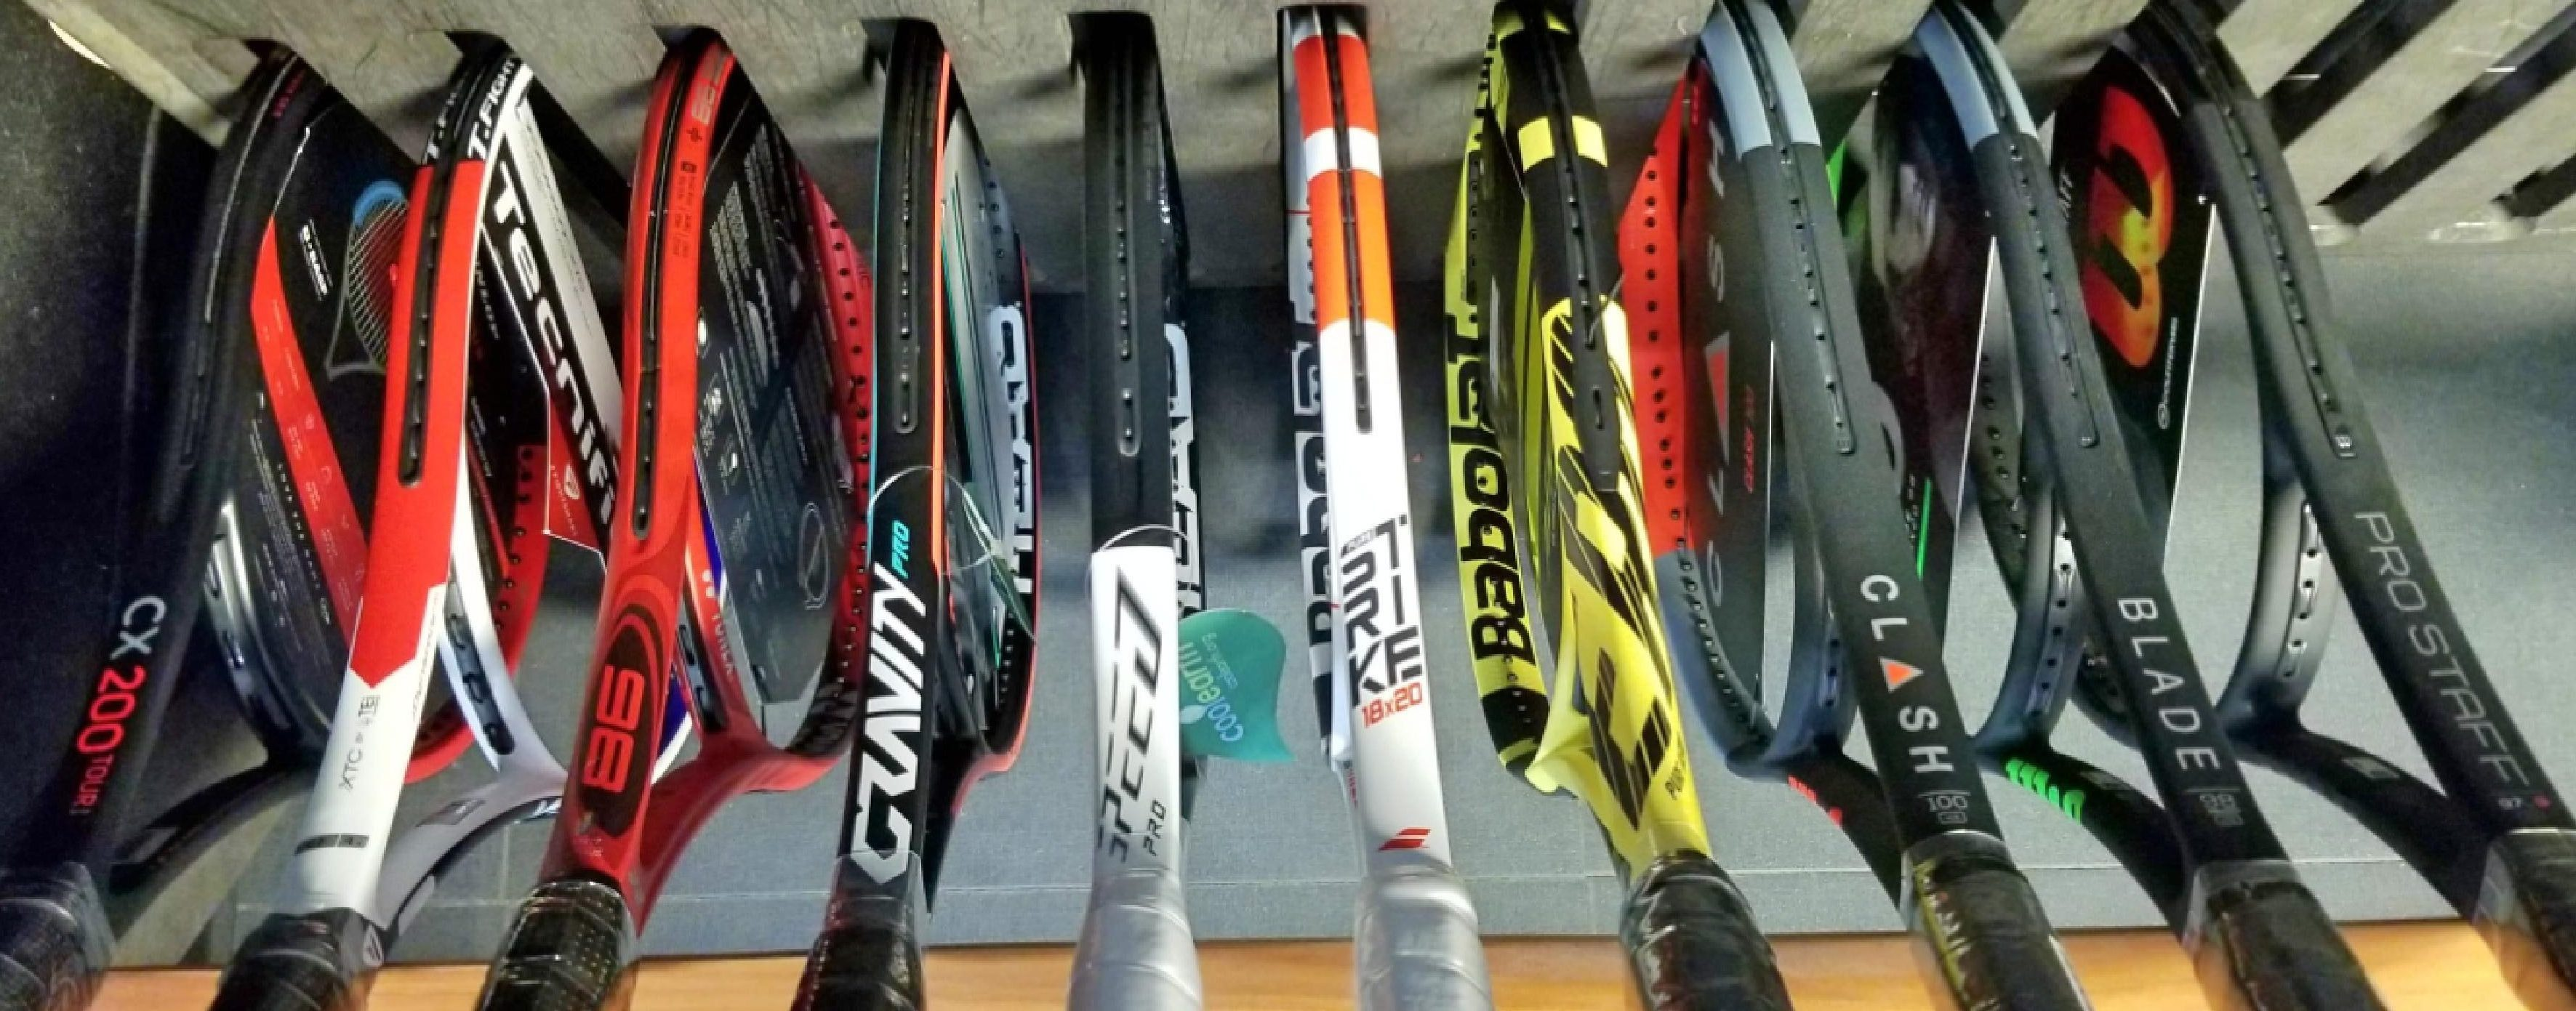 Top 10 Tennis Racquets To Raise Your Game